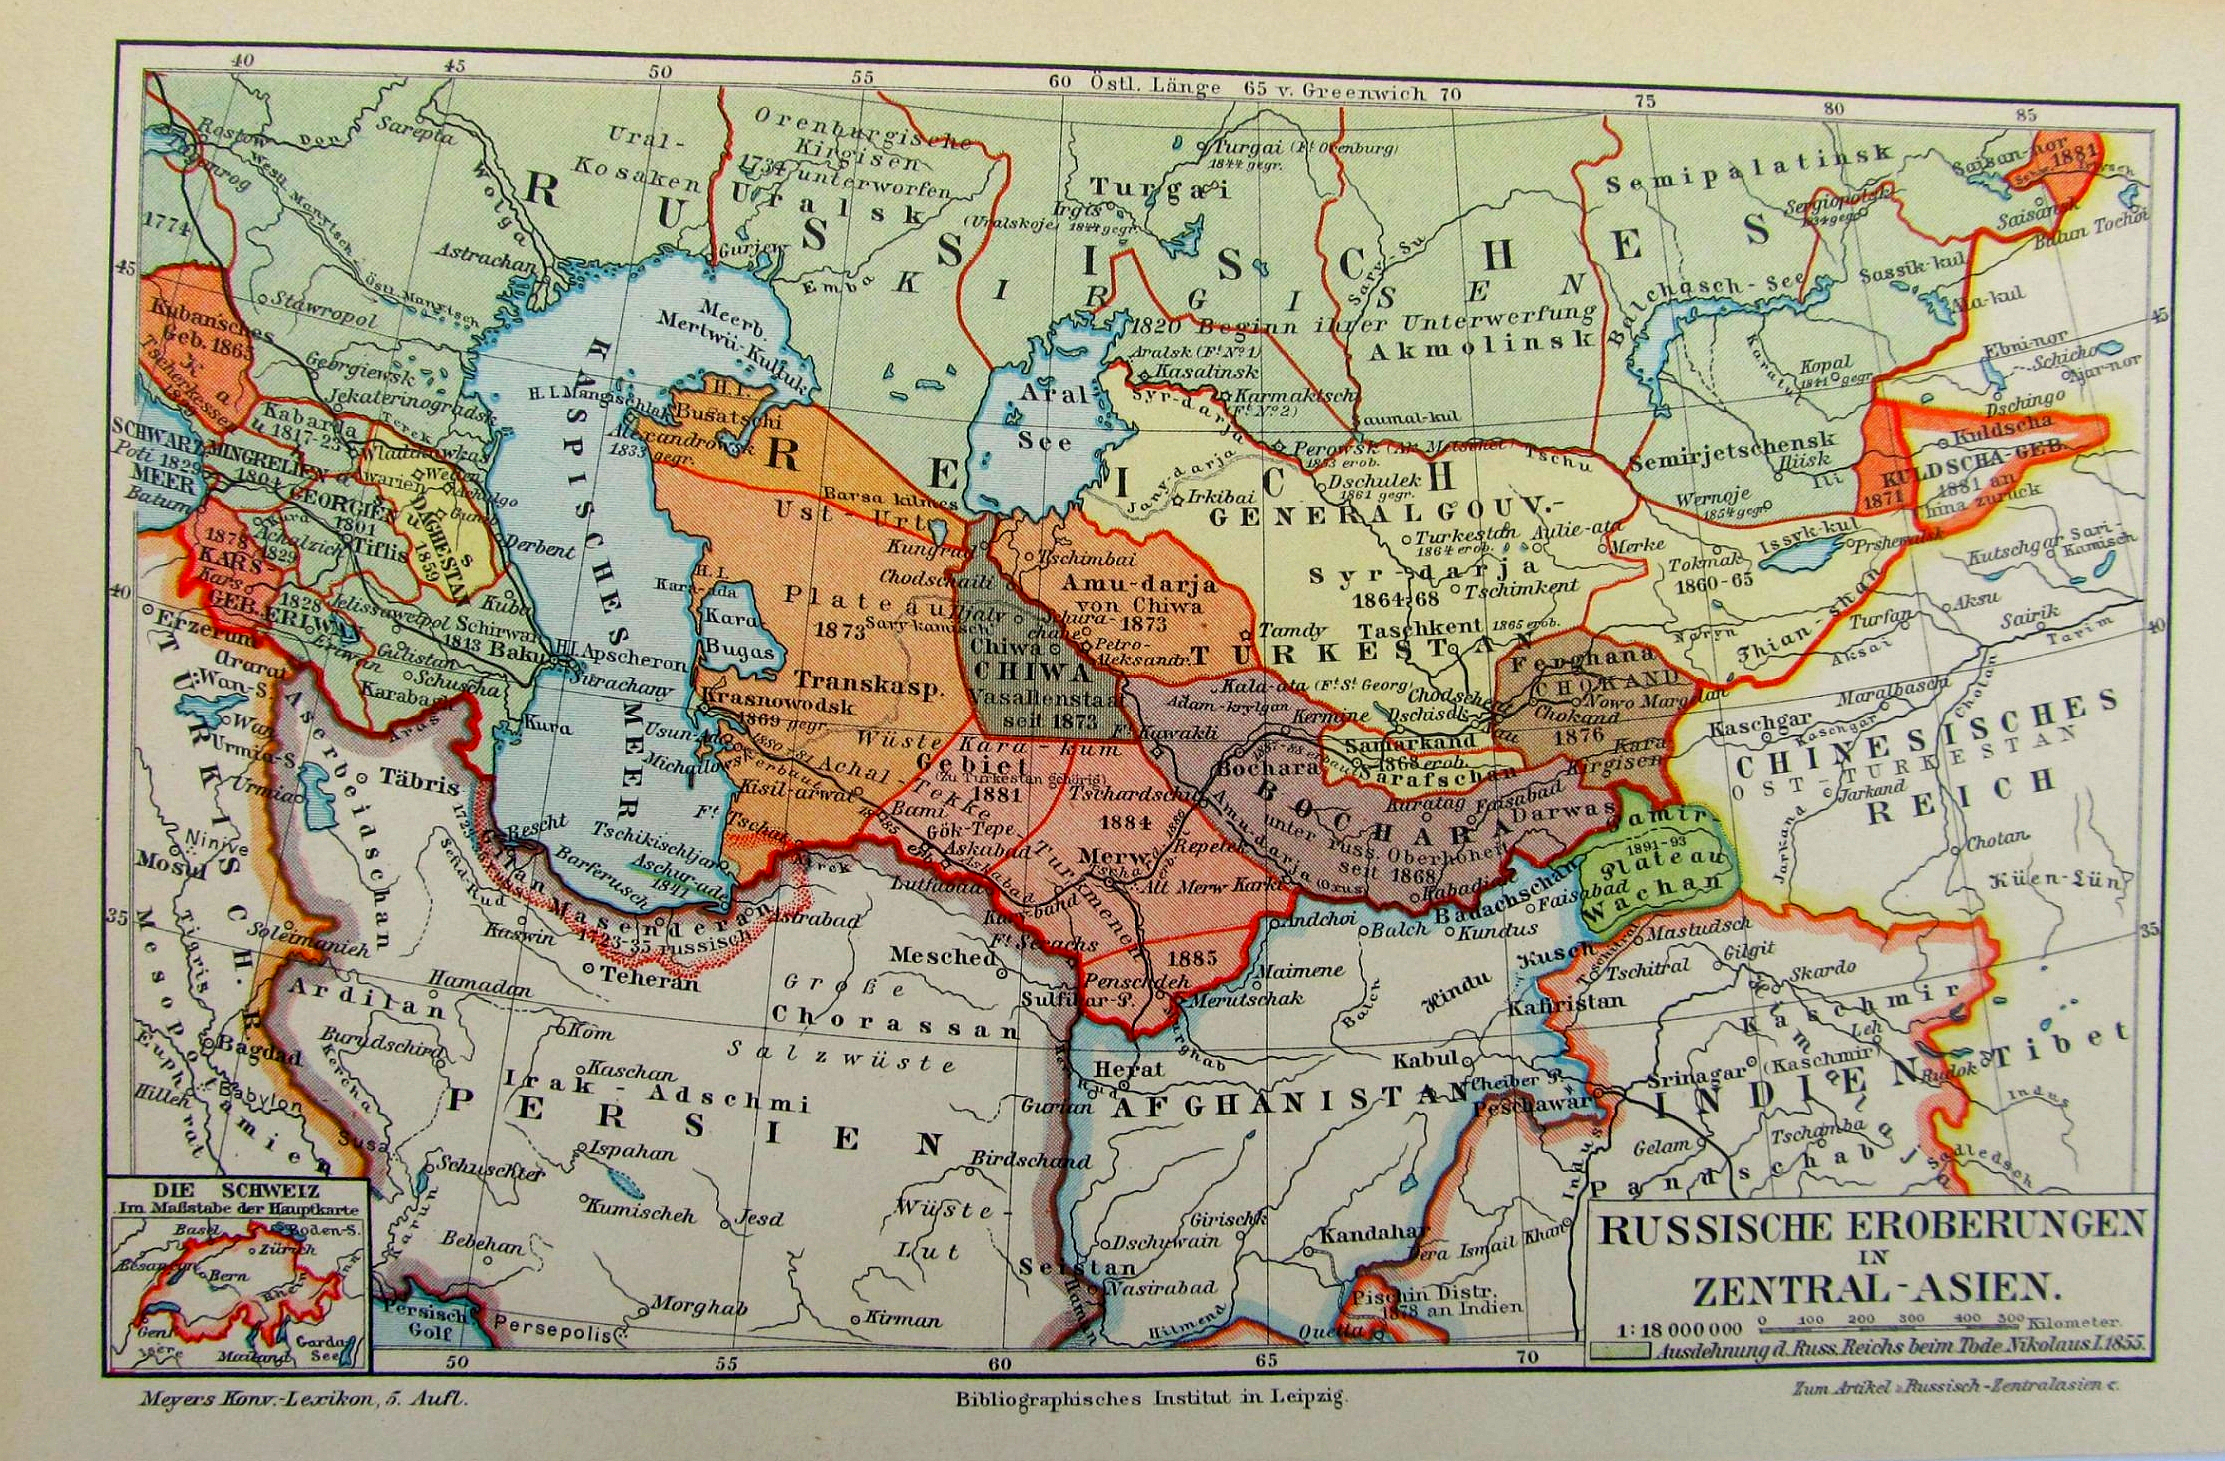 Russian aquisitions in Central Asia 1897 map